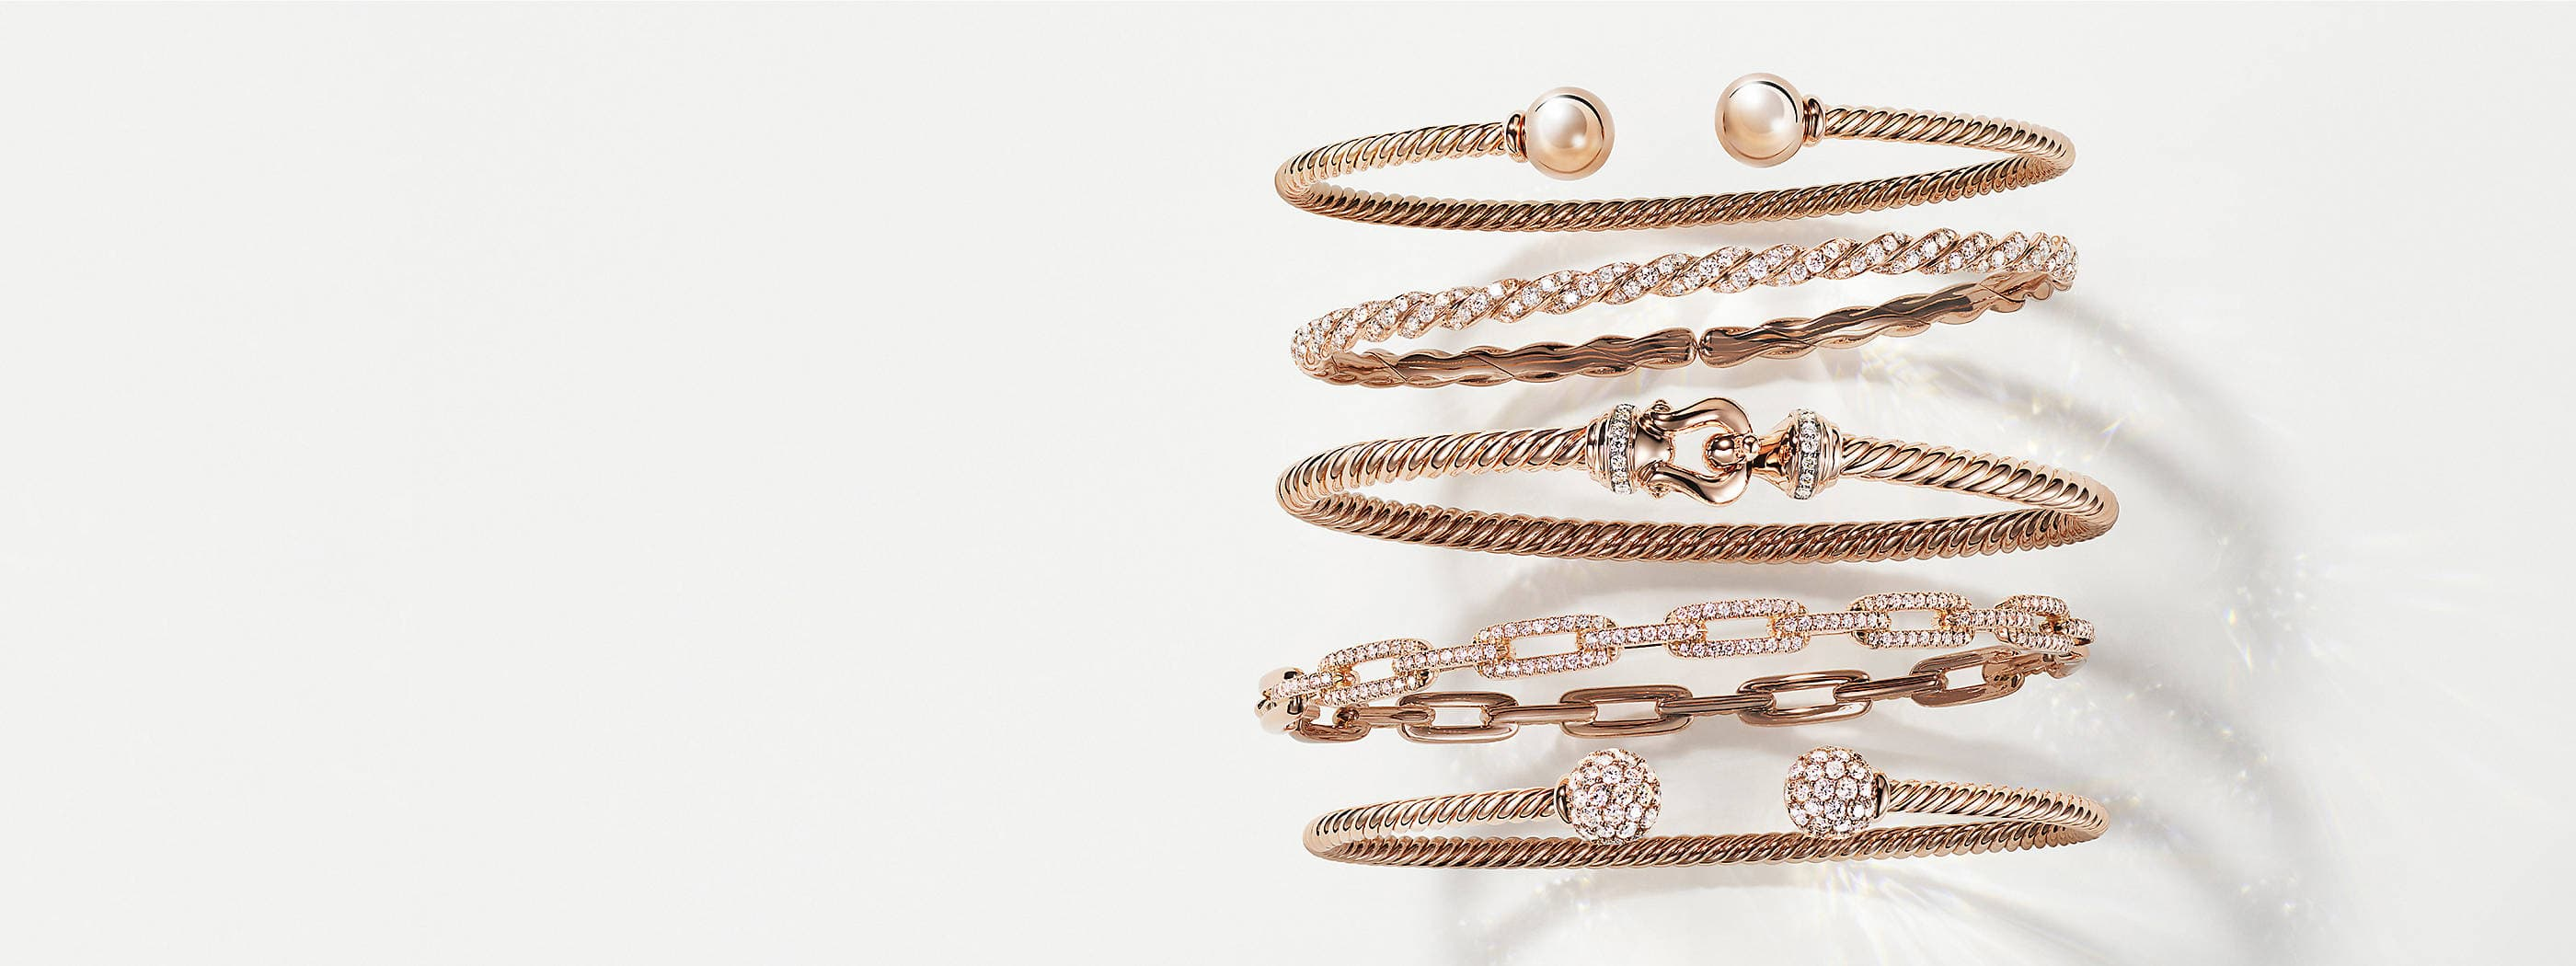 A color photograph shows a vertical row of five David Yurman bracelets on a white background. The women's jewelry is crafted from 18K yellow gold with pavé diamonds. Four of the bracelets feature Cable, a buckle motif or ball-shaped ends, while one bracelet is a chain-link design